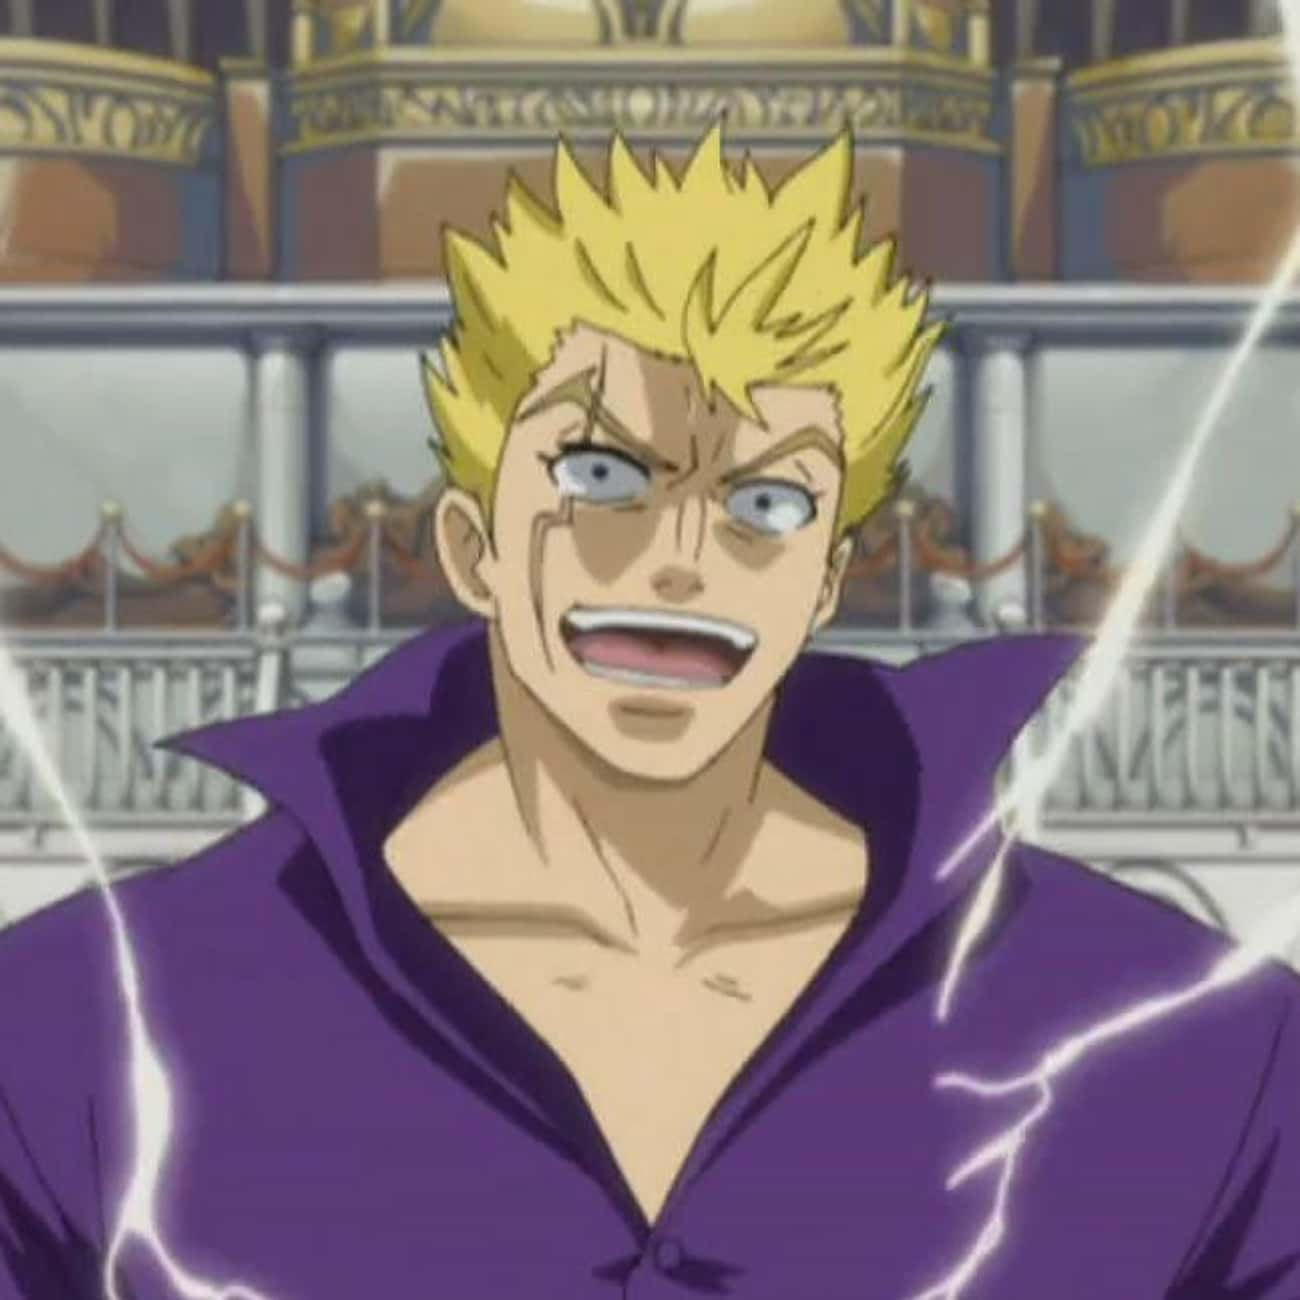 Move Forward is listed (or ranked) 4 on the list The Best Laxus Dreyar Quotes